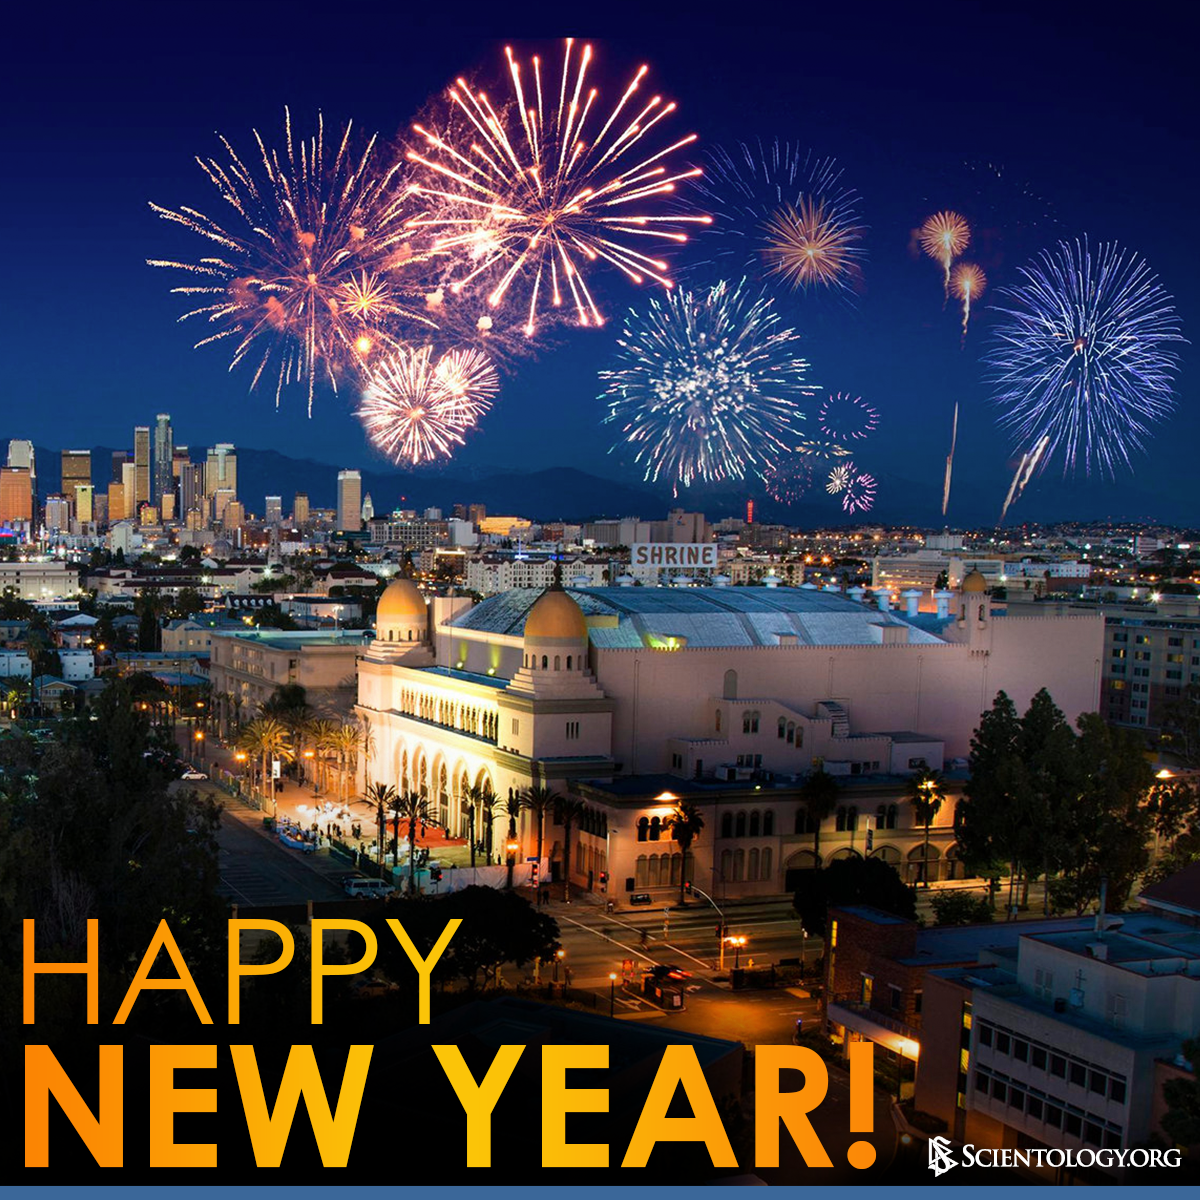 The Church of Scientology wishes you a wonderful New Year's Eve! https://t.co/xQy2tA3j4D